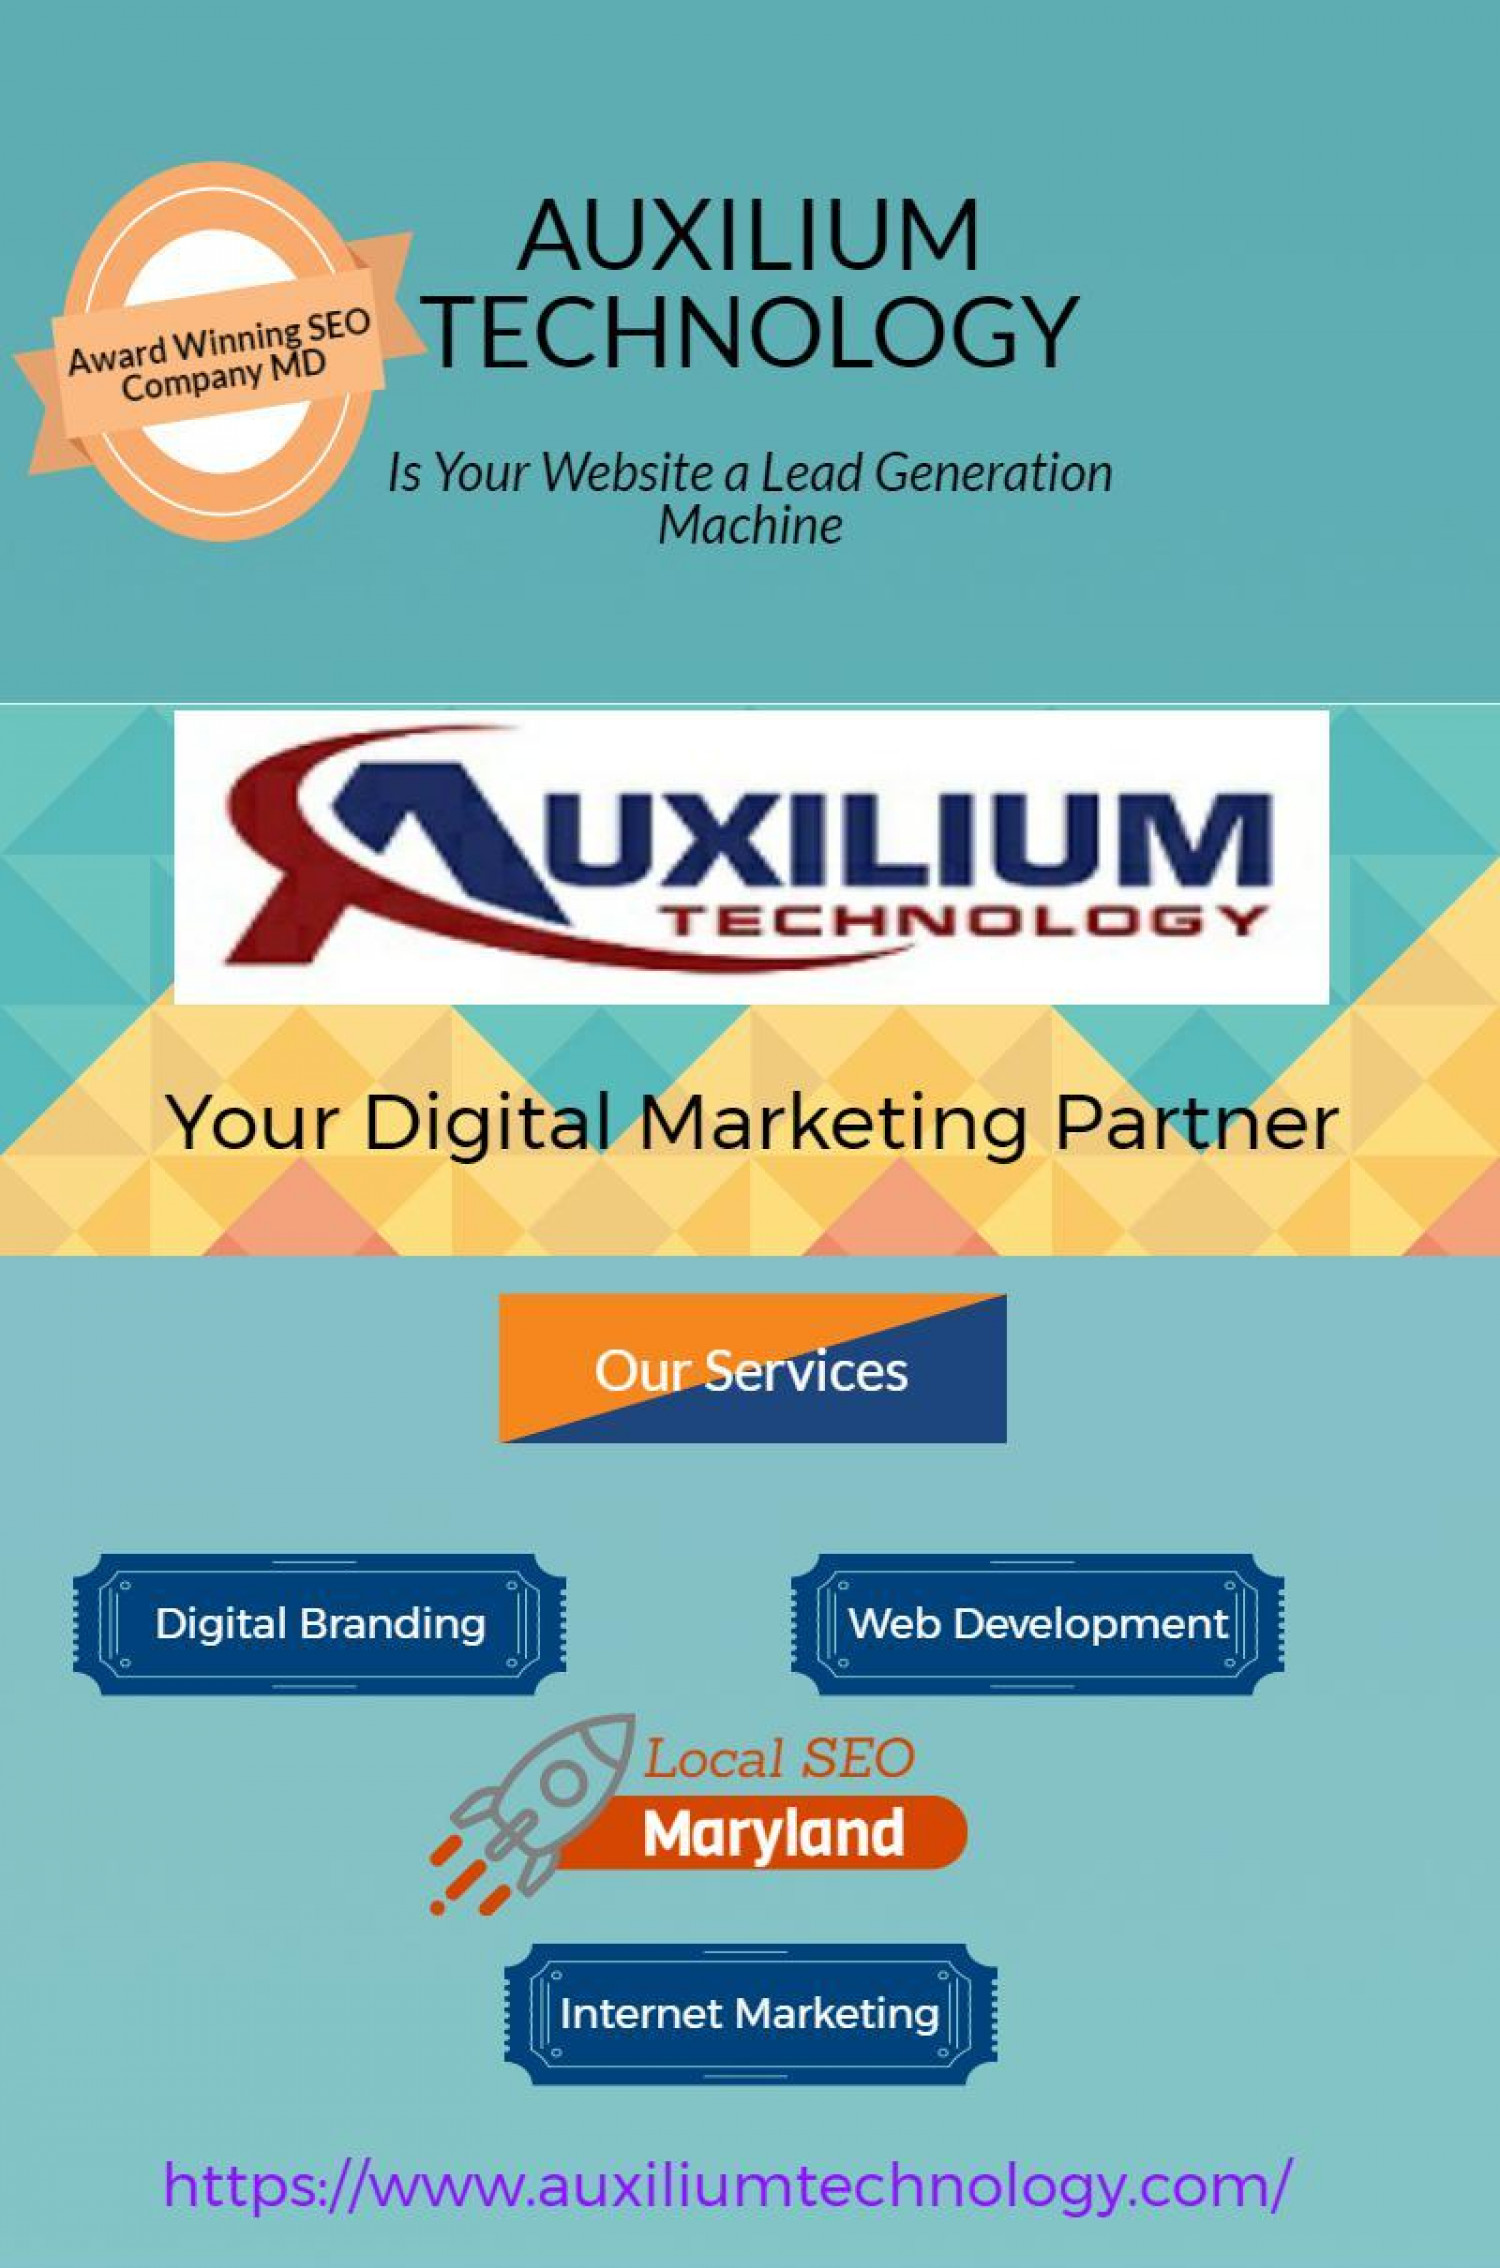 web design company Maryland Infographic